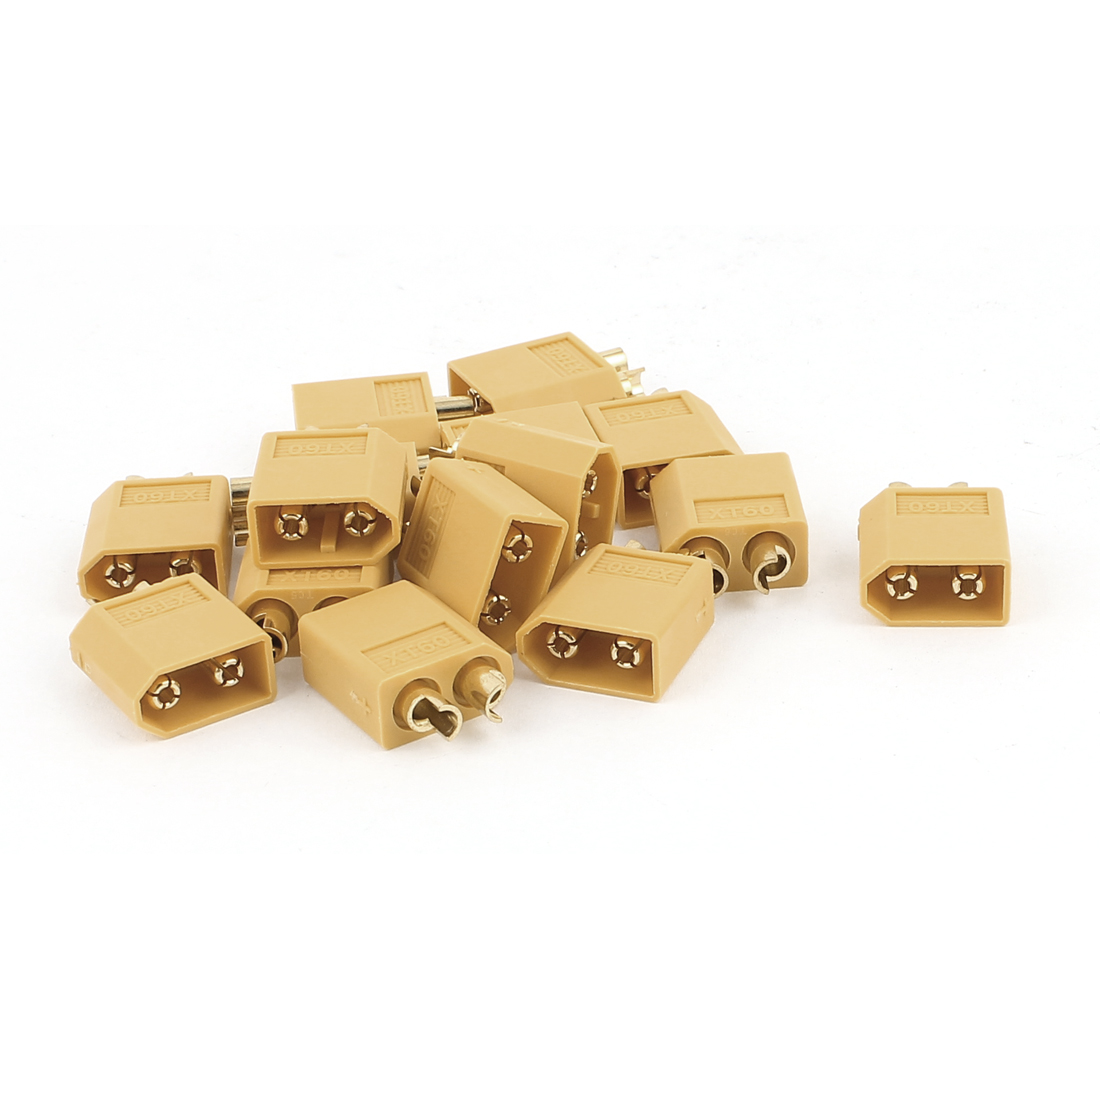 15Pcs Type Female XT60 Plug Connector for RC Airplane Yellow